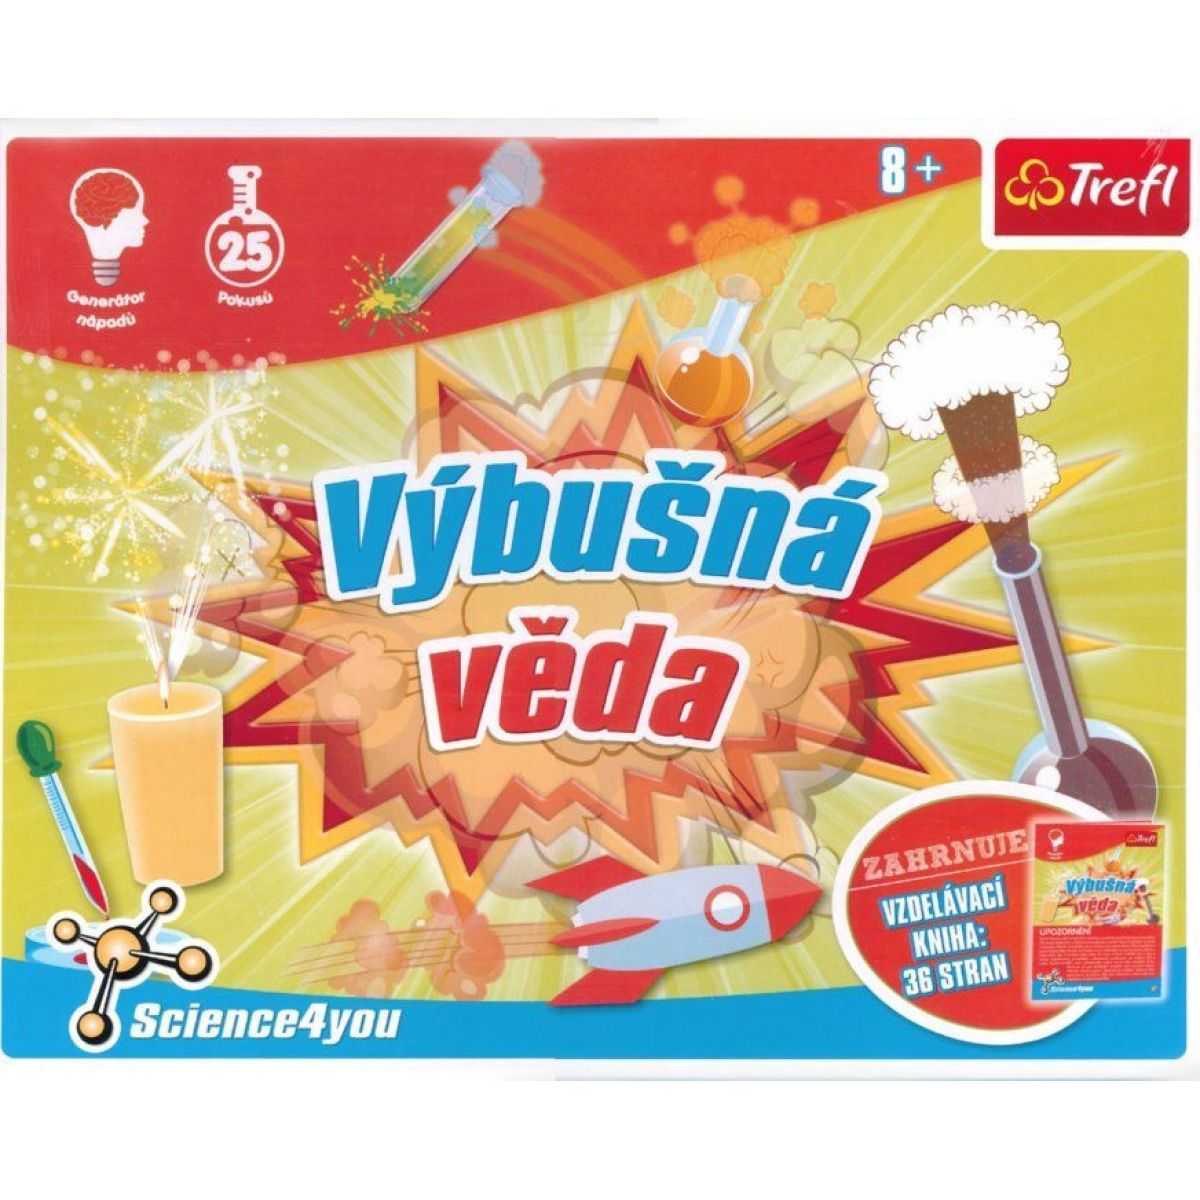 Trefl Výbušná věda Science 4 you